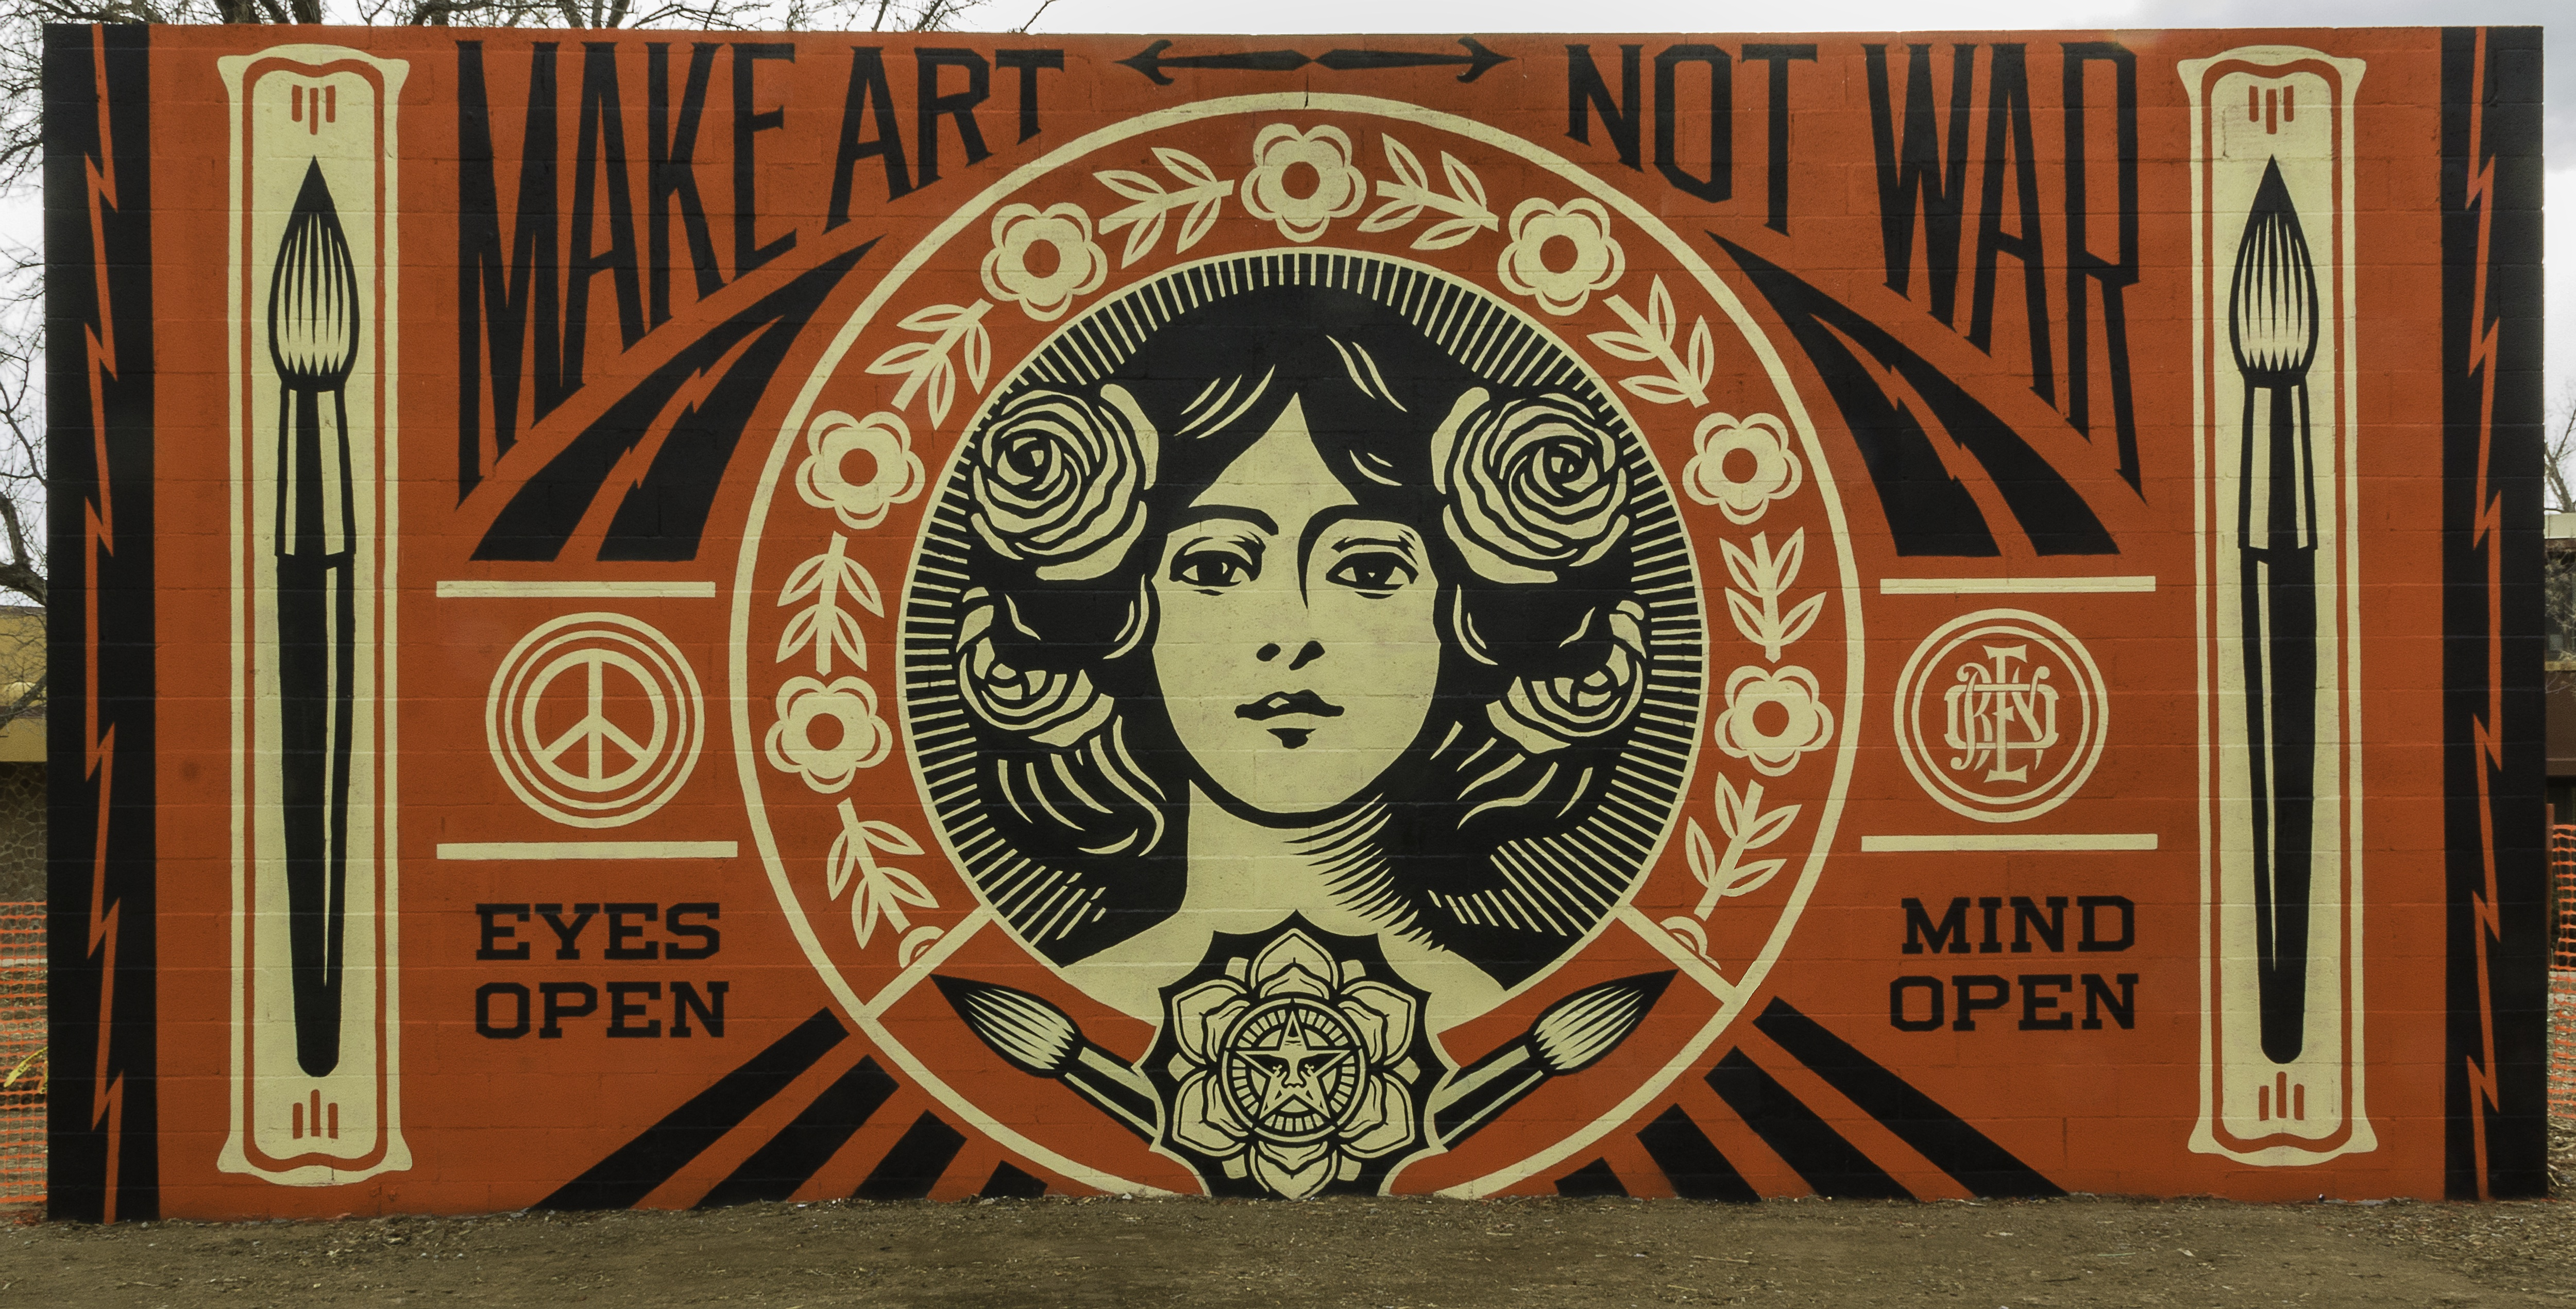 Santa Fe University x Shepard Fairey - Obey Giant